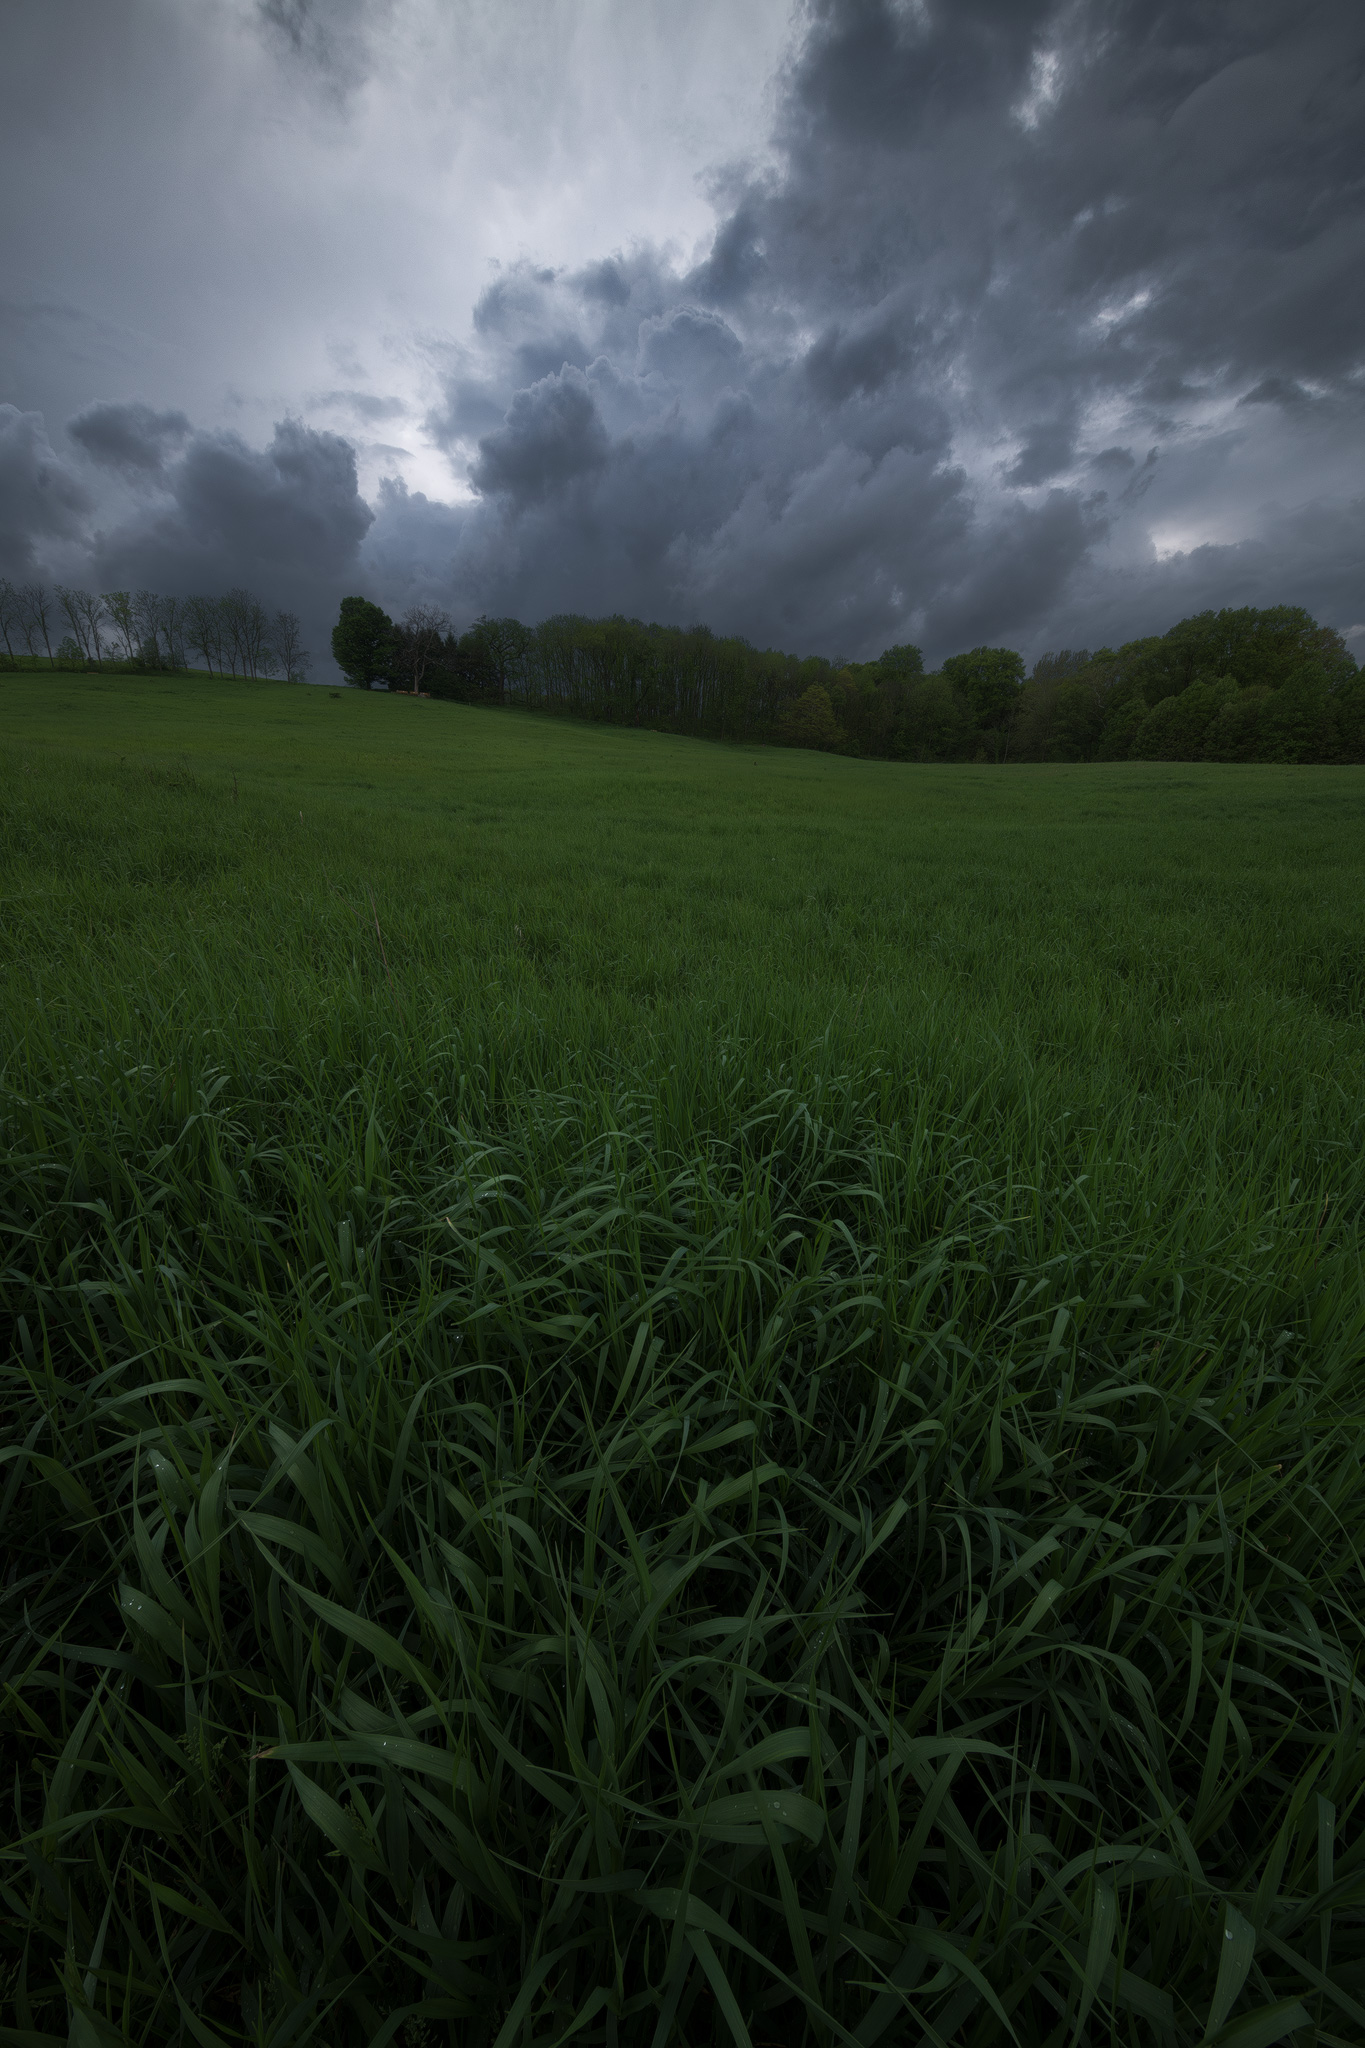 Stormy spring weather on a walk near my home with the family. The ultrawide 11mm perspective lends itself well to creating depth out of any repeating patterns.